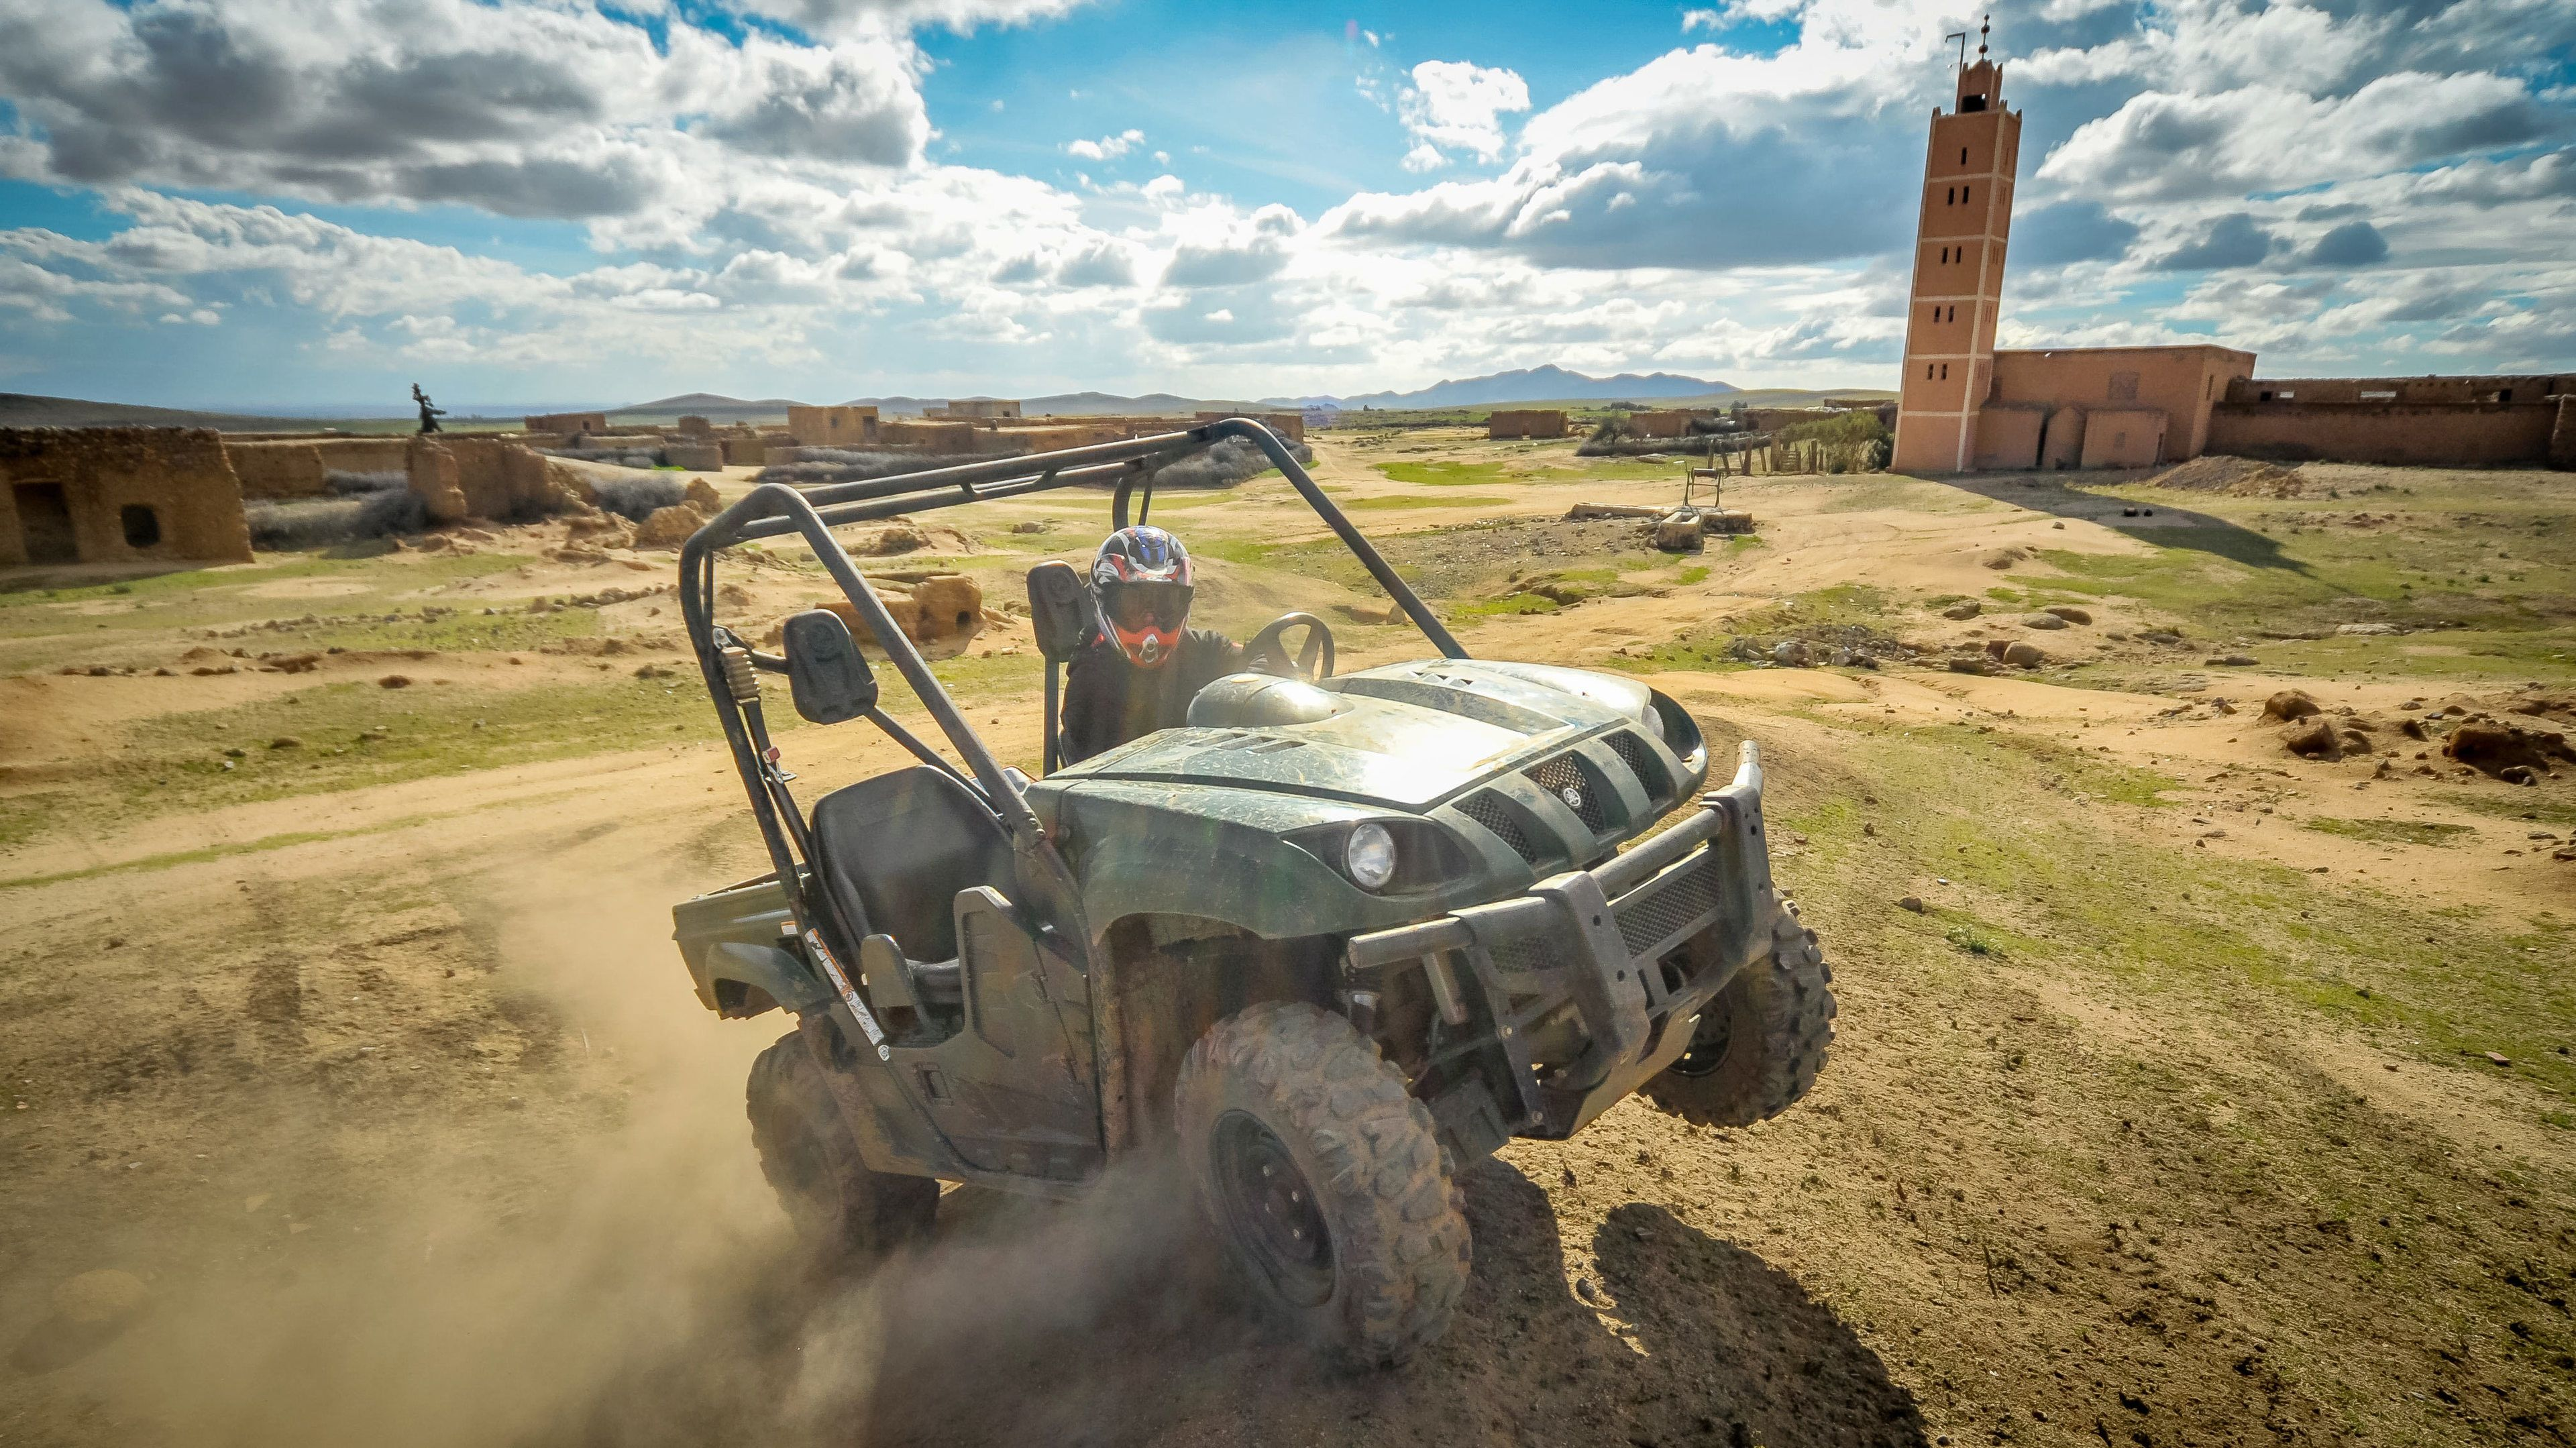 Person on Desert Buggy Tour in Jbilets Mountains of Marrakech